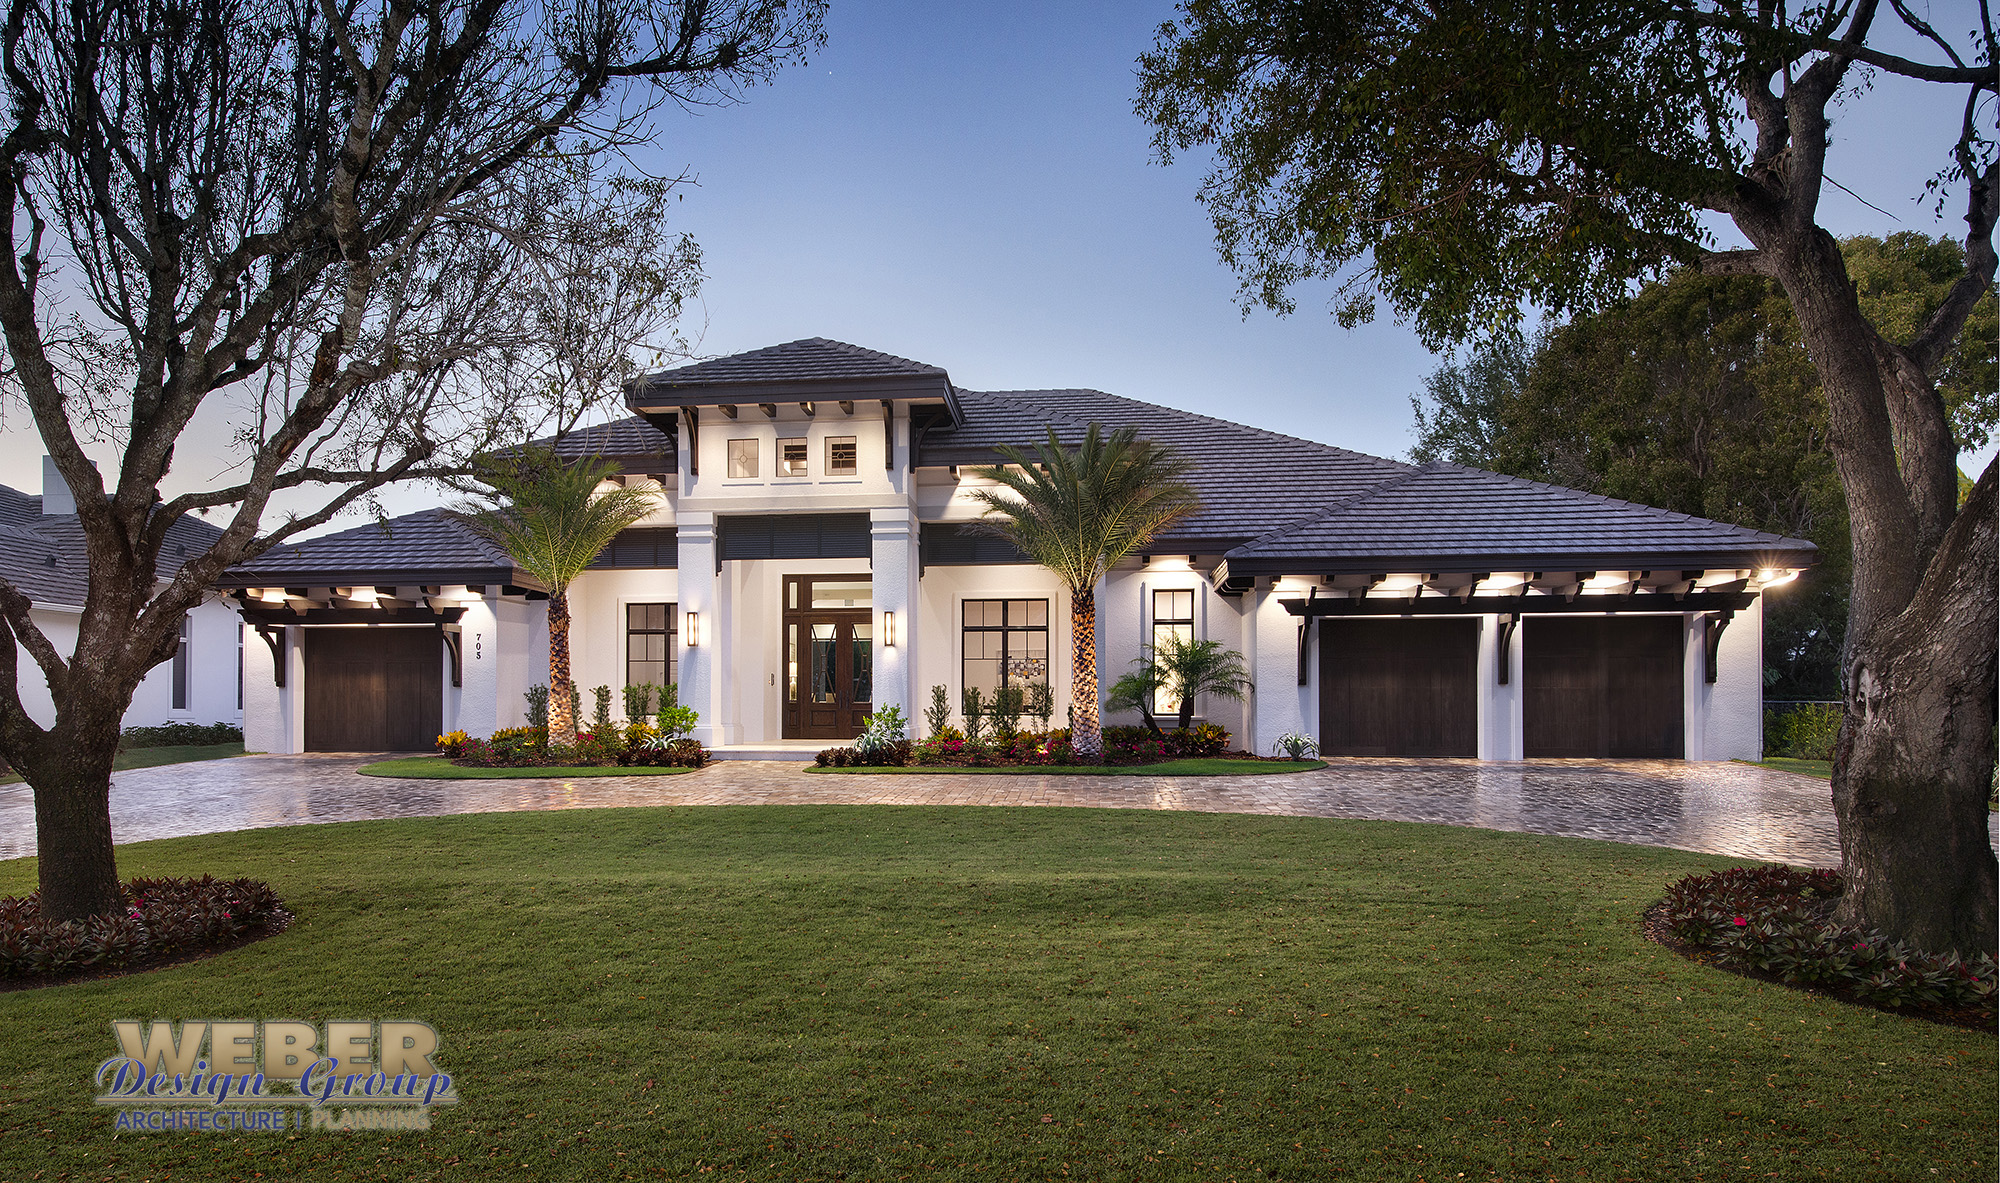 view details - Mansion Architectural Styles